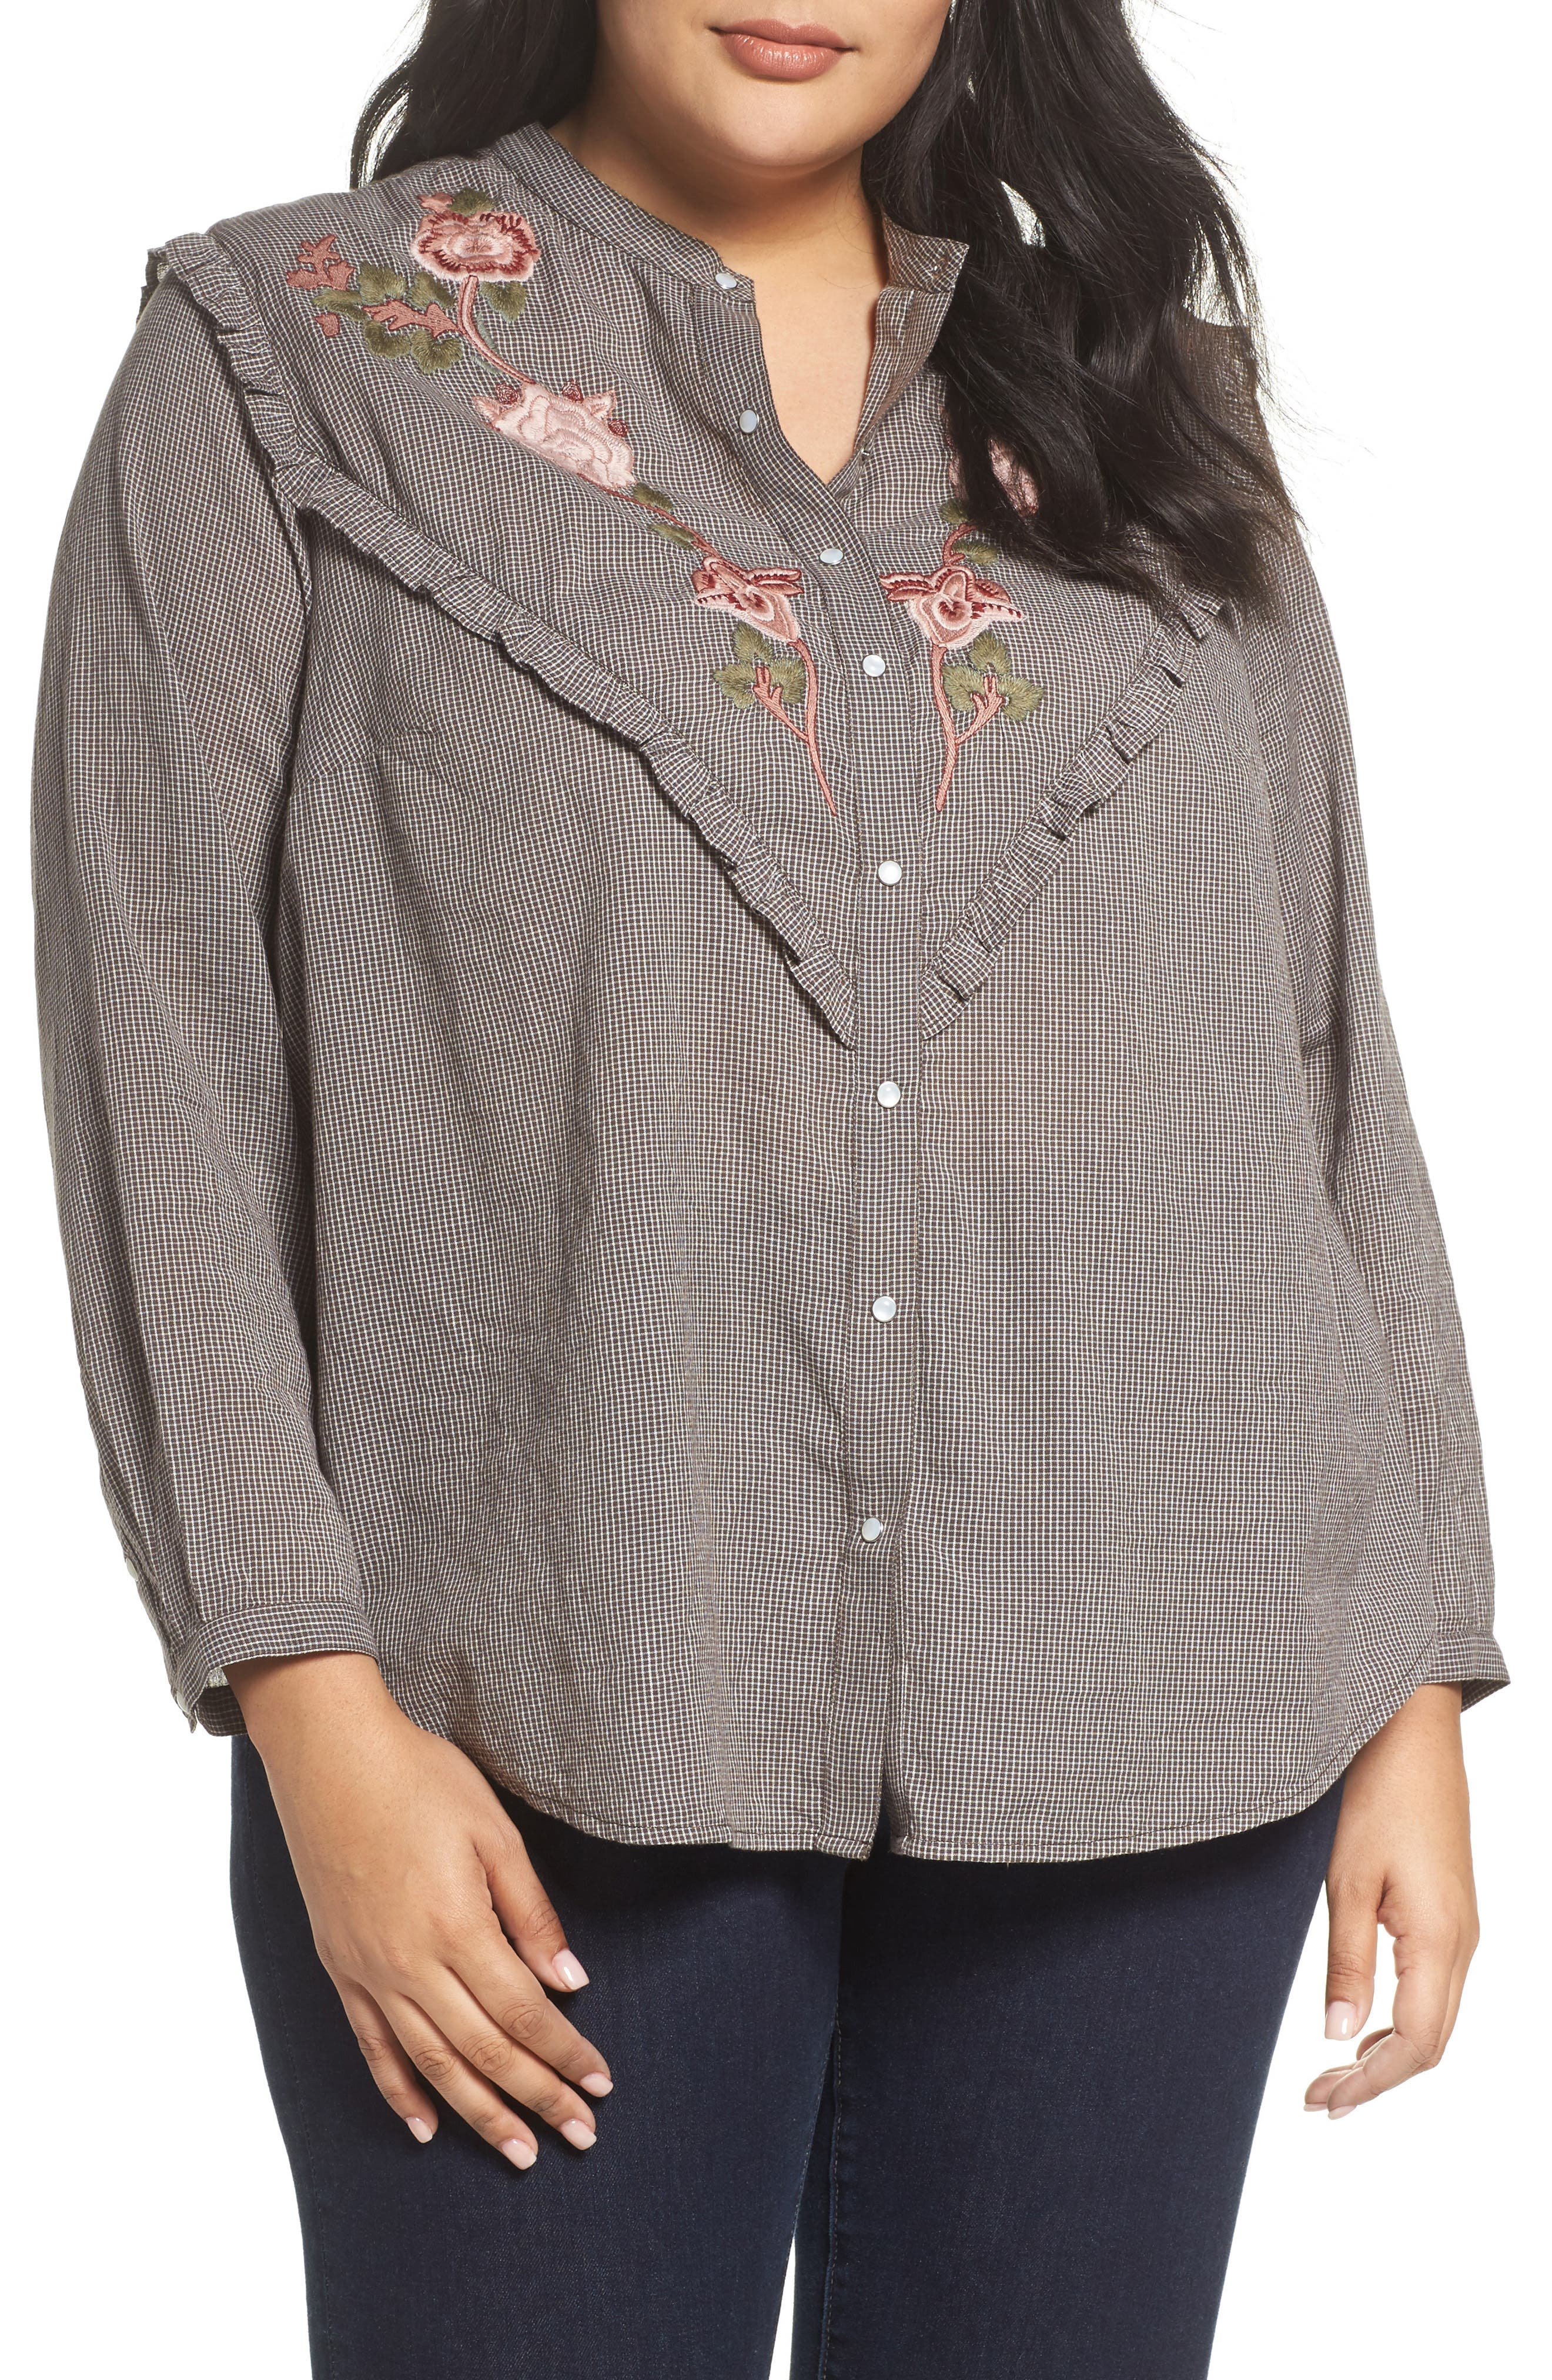 Alternate Image 1 Selected - Lucky Brand Embroidered Western Shirt (Plus Size)